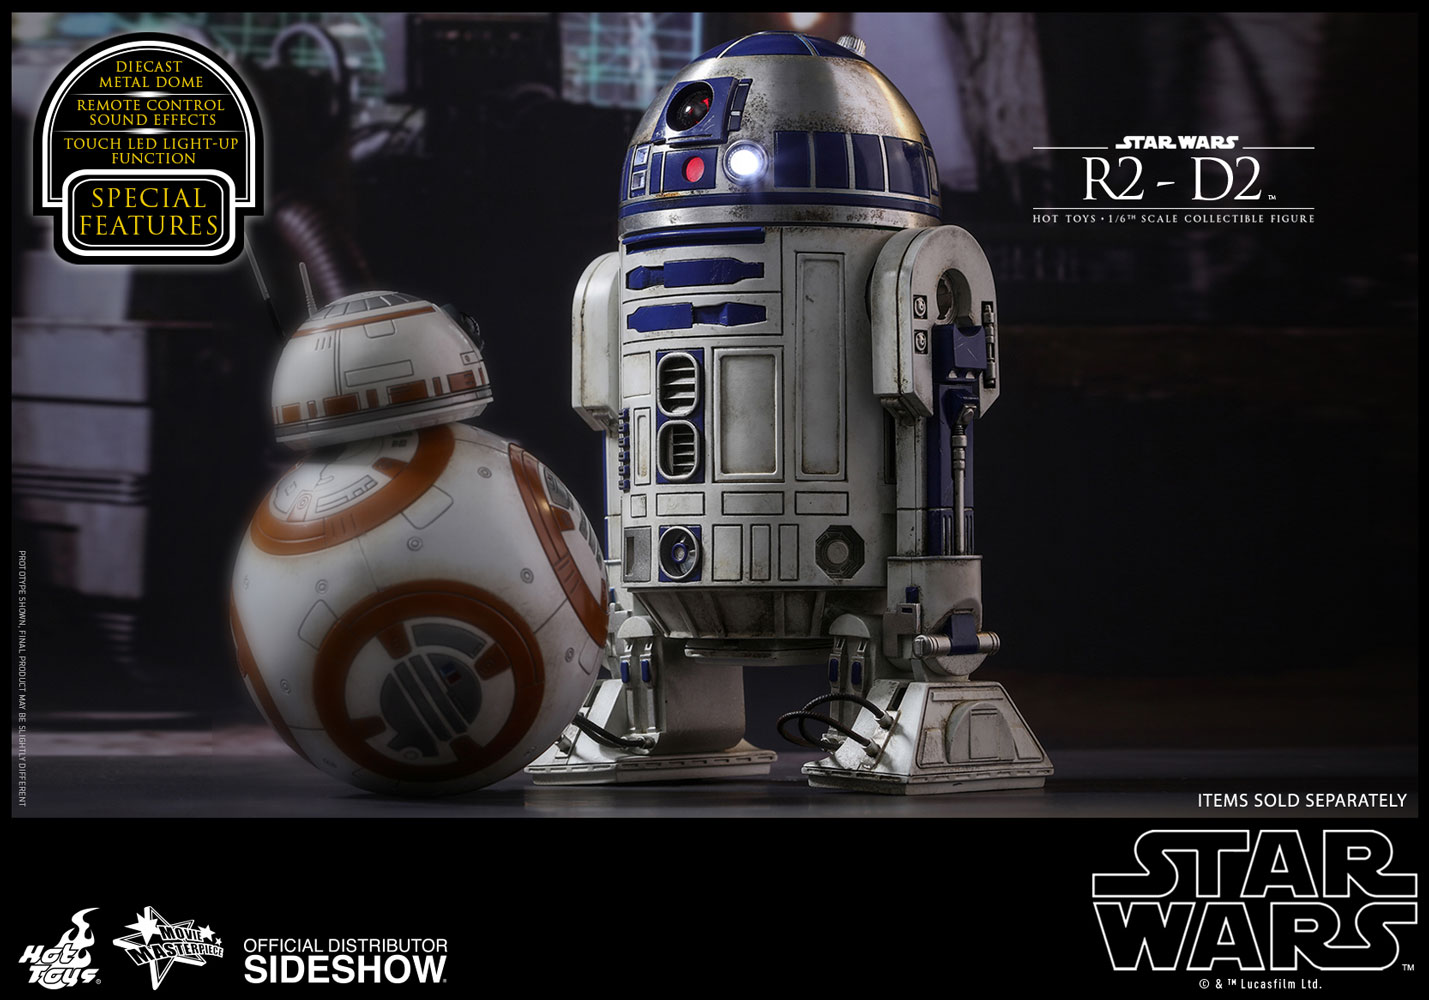 Genuine Hot Toys star wars C-3PO R2-D2 Cosbaby toy figure The Force Awakens